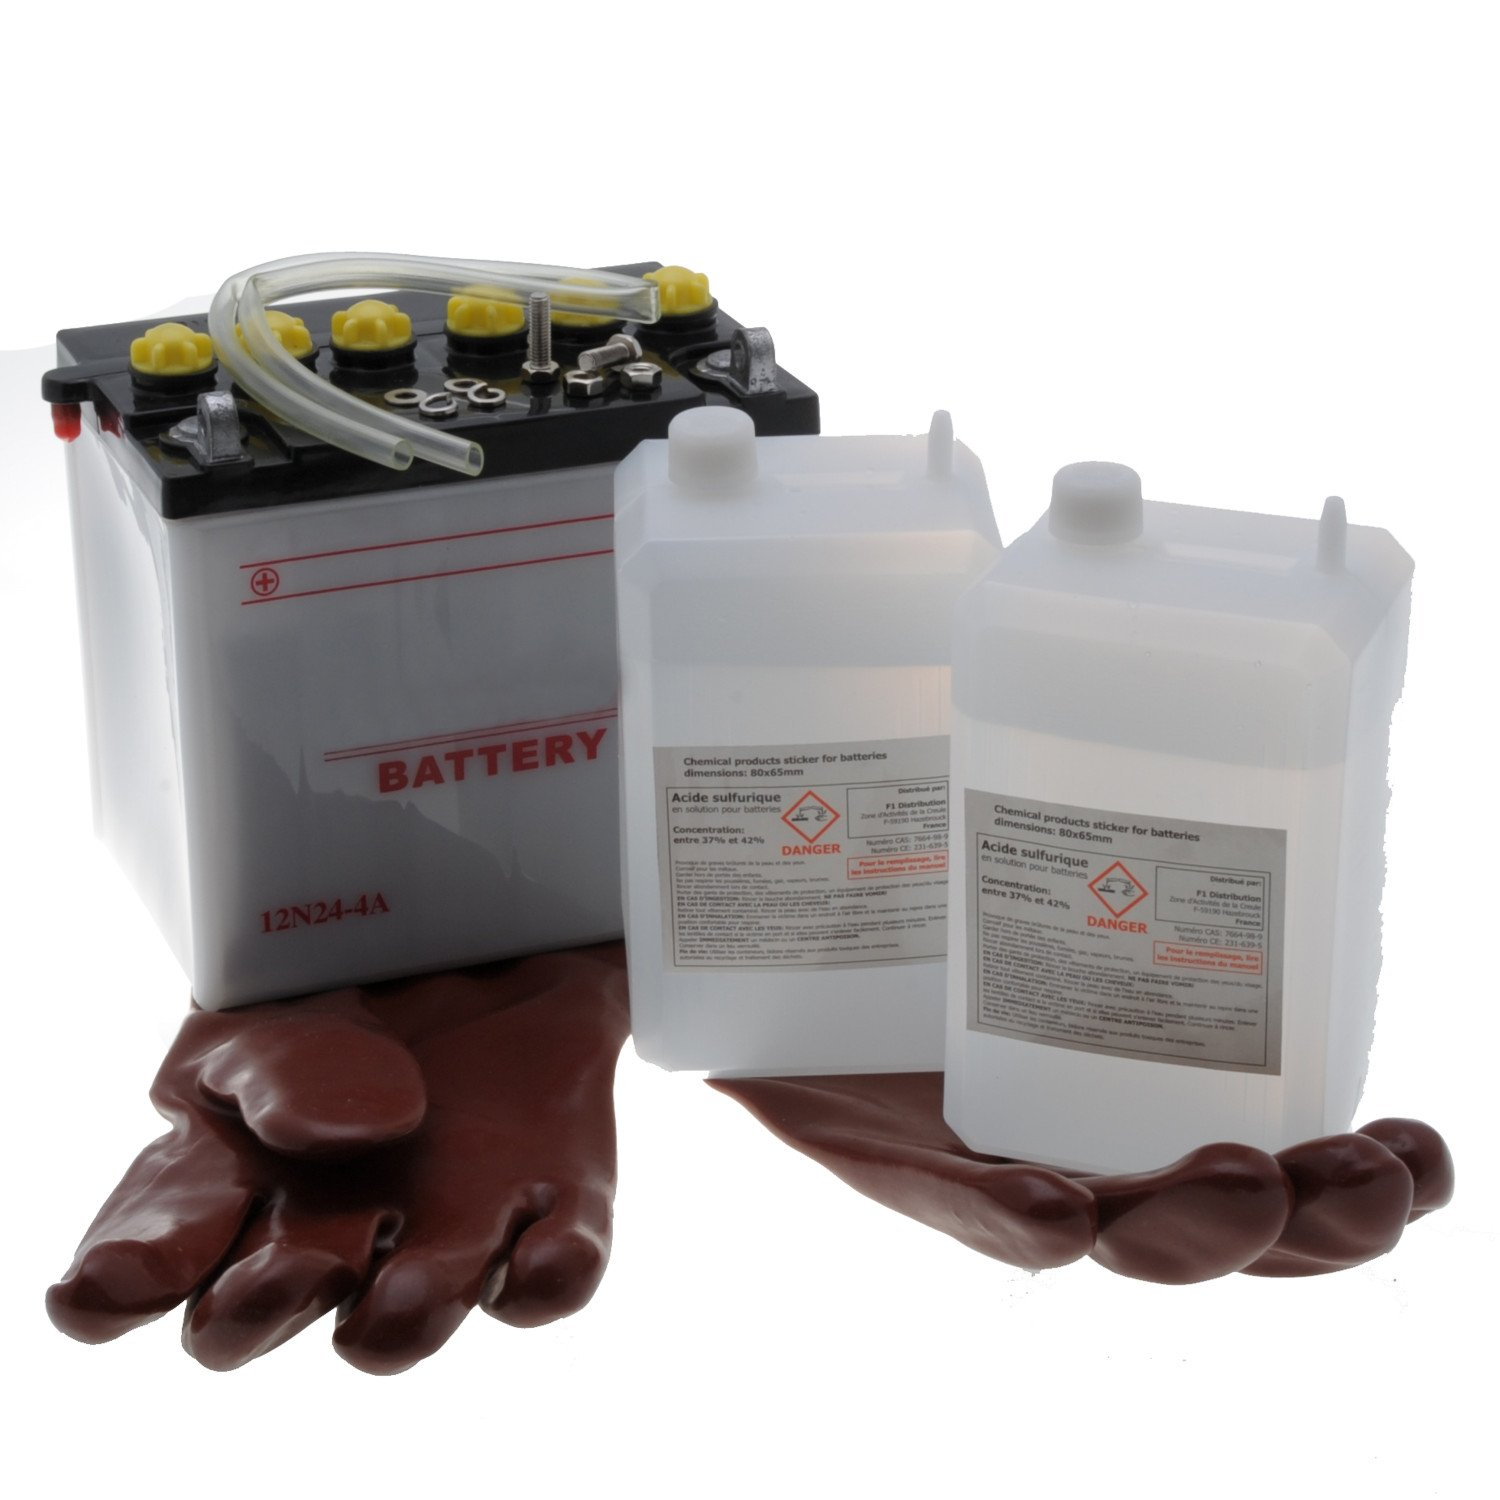 The Tractor Tractor Battery 12 N24-4 Comes With Acid Jardiaffaires